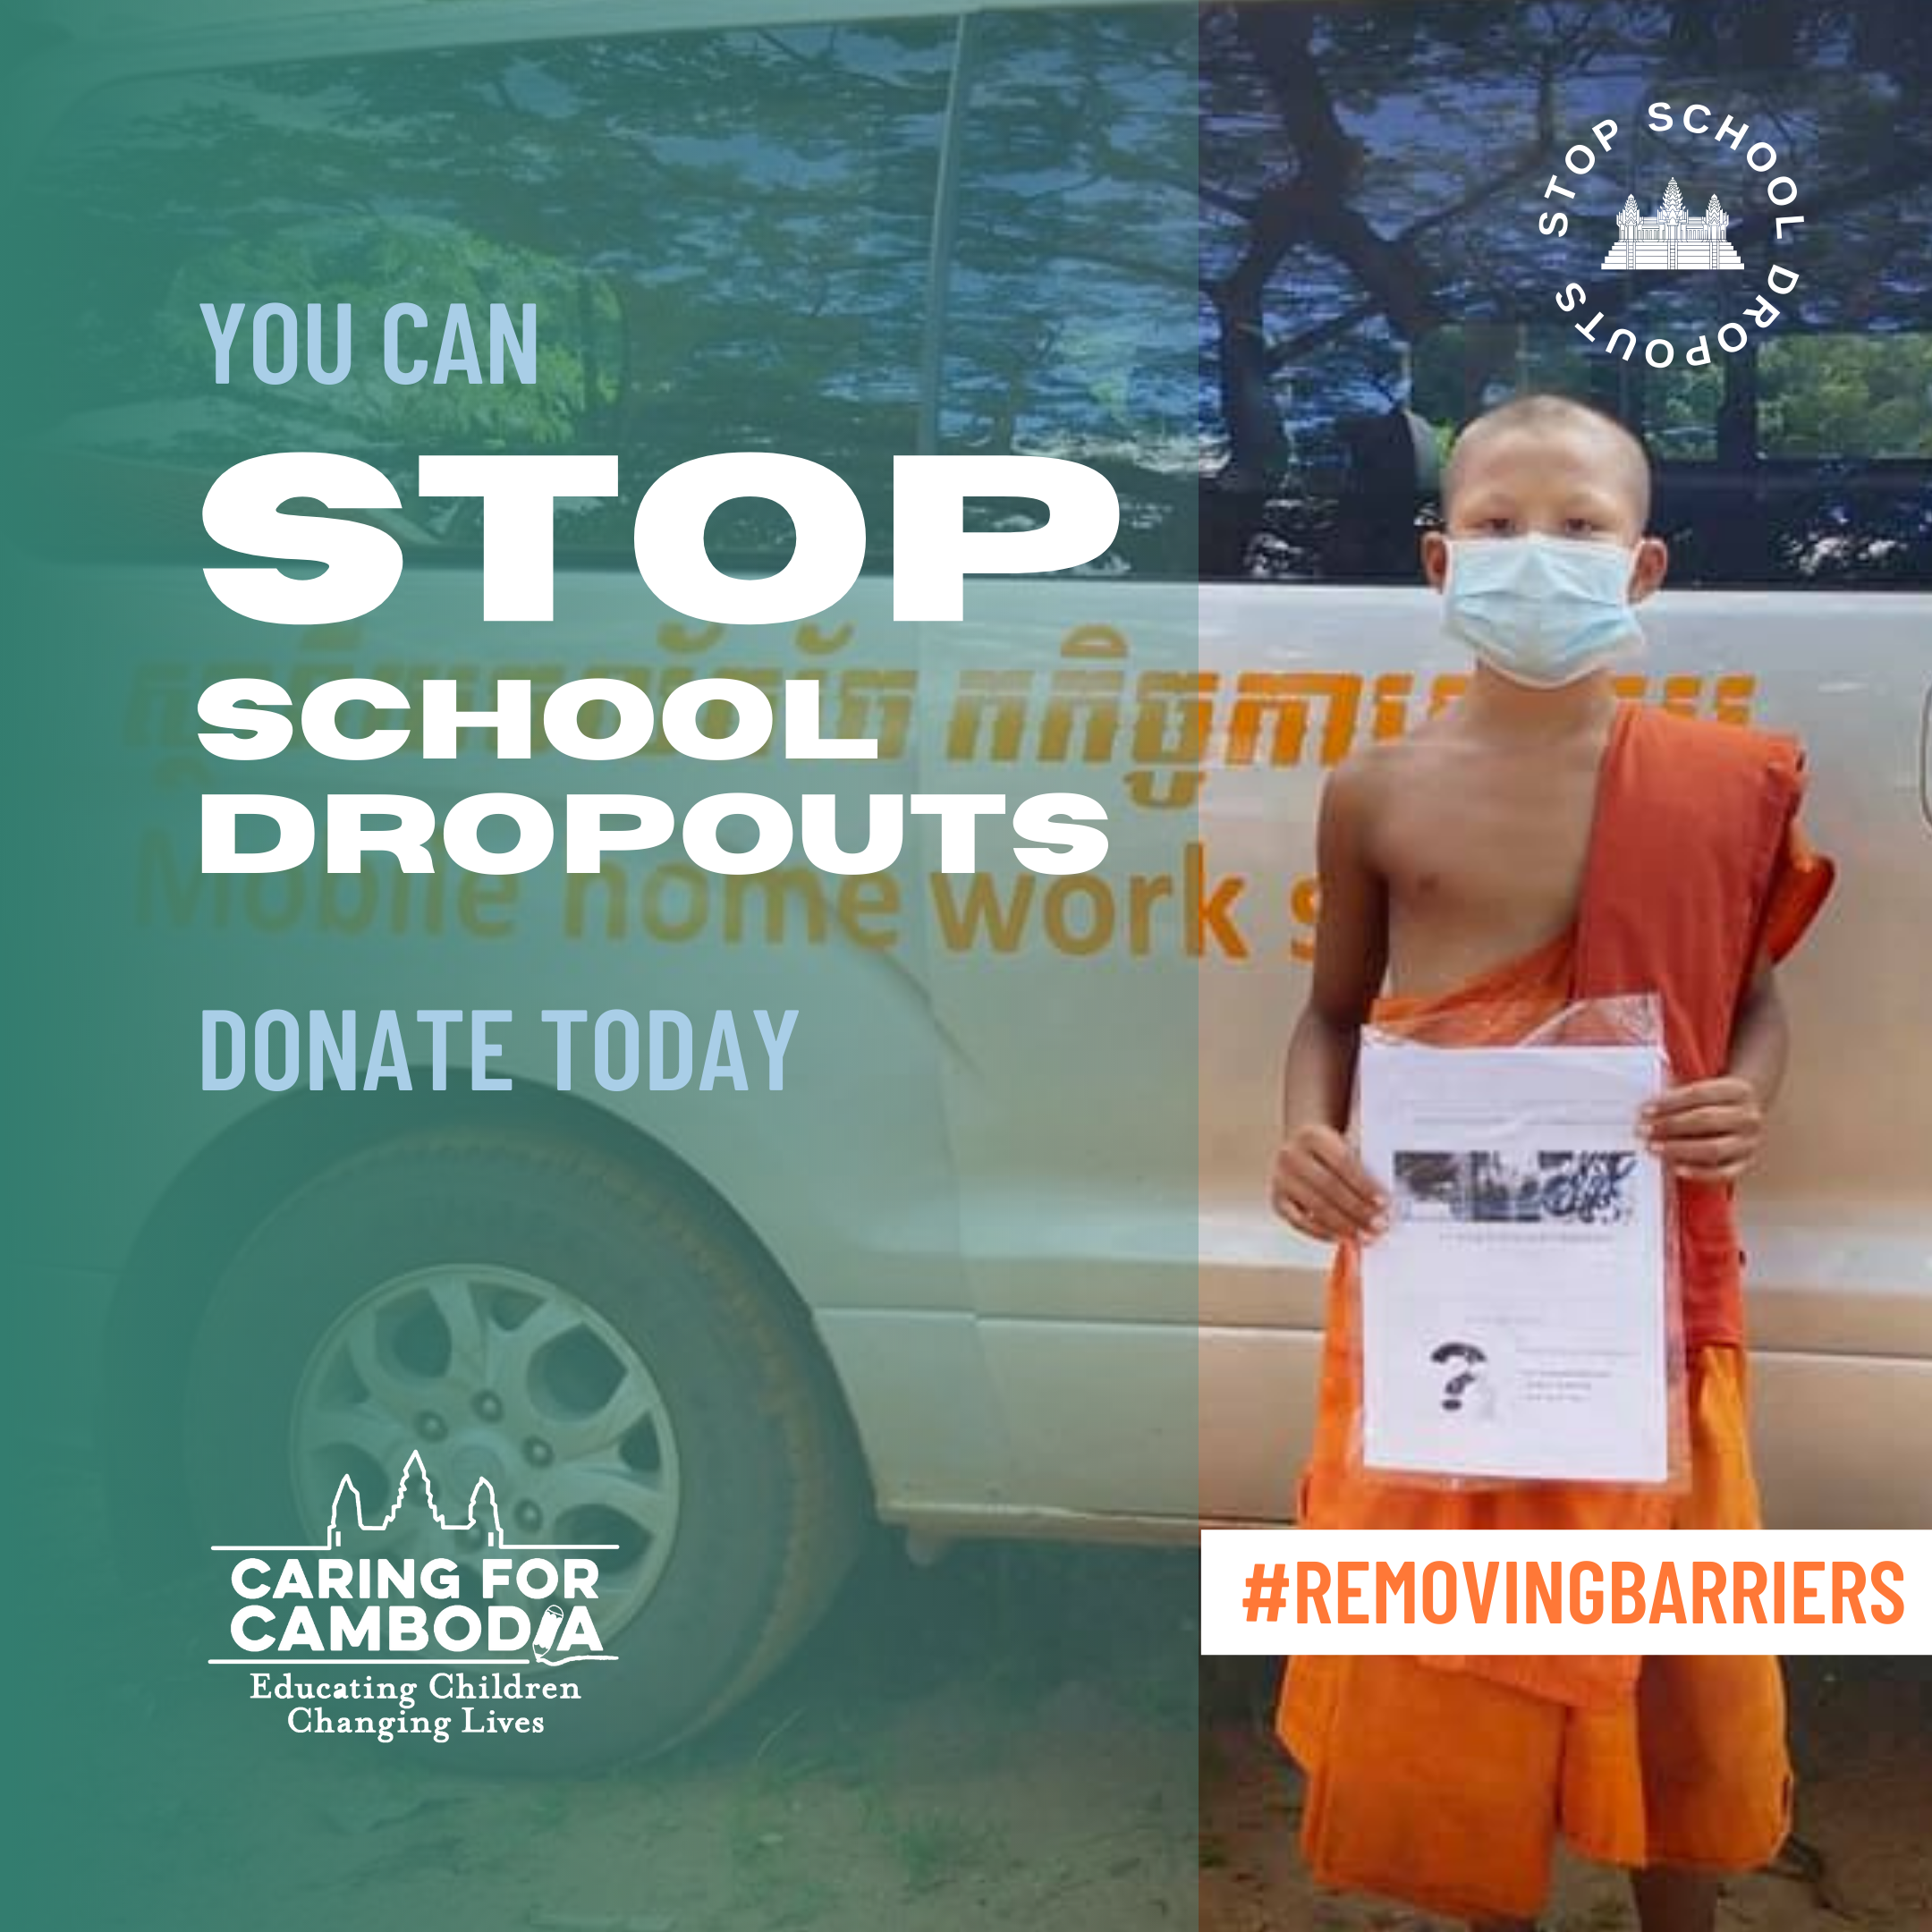 CFC Is #RemovingBarriers to Stop School Dropouts